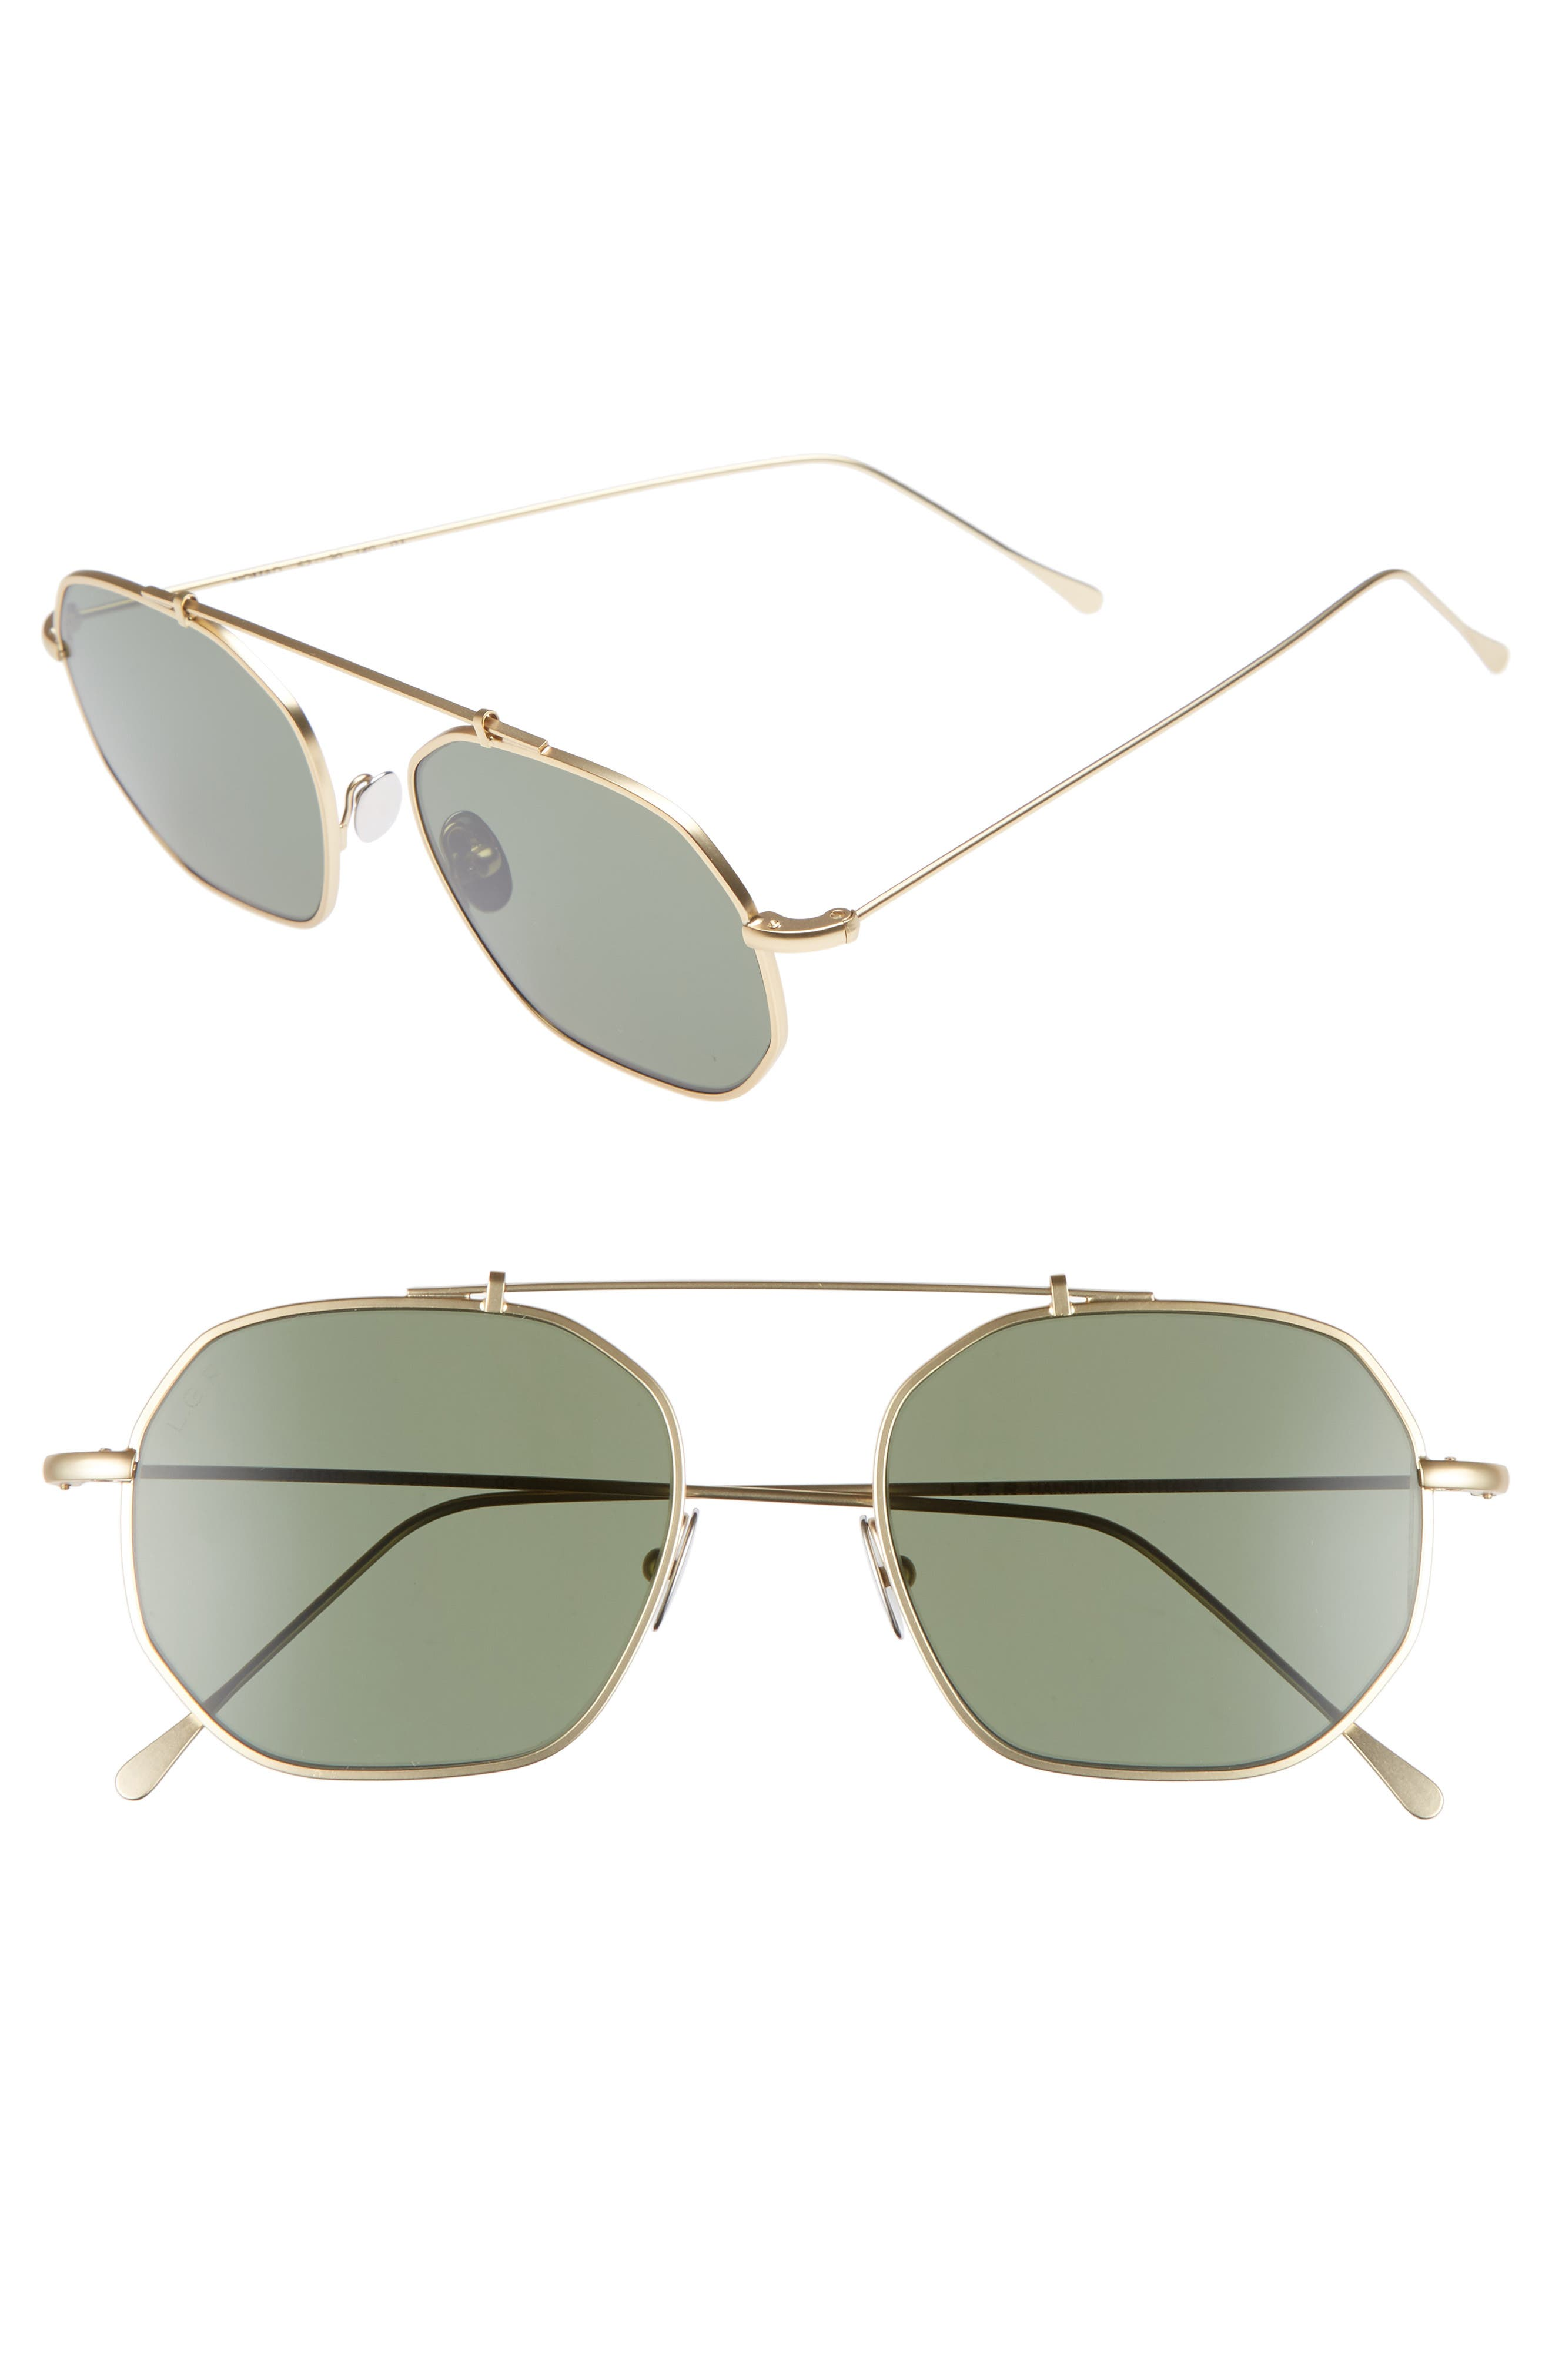 Nomad 52mm Sunglasses,                         Main,                         color, Gold Matte/ Green